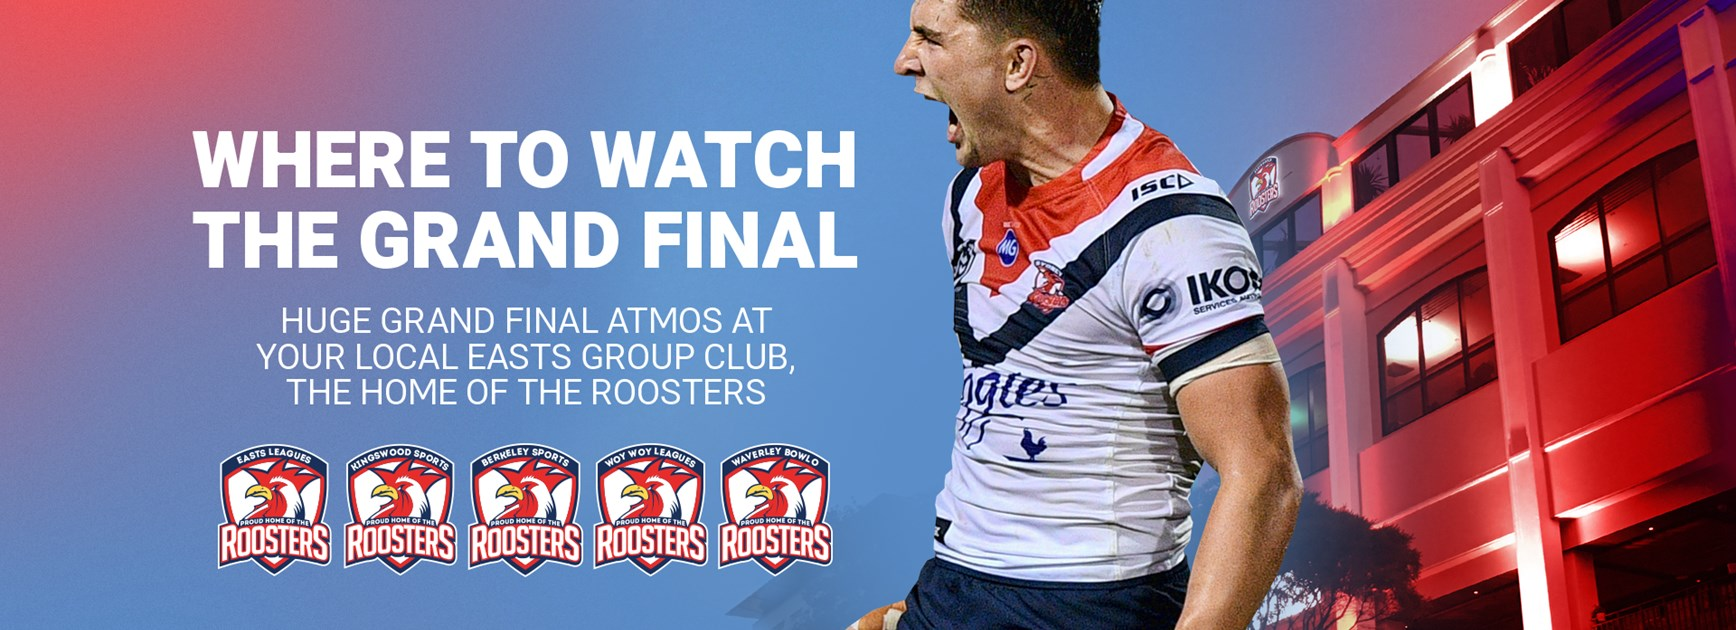 Watch the Grand Final At Easts Leagues